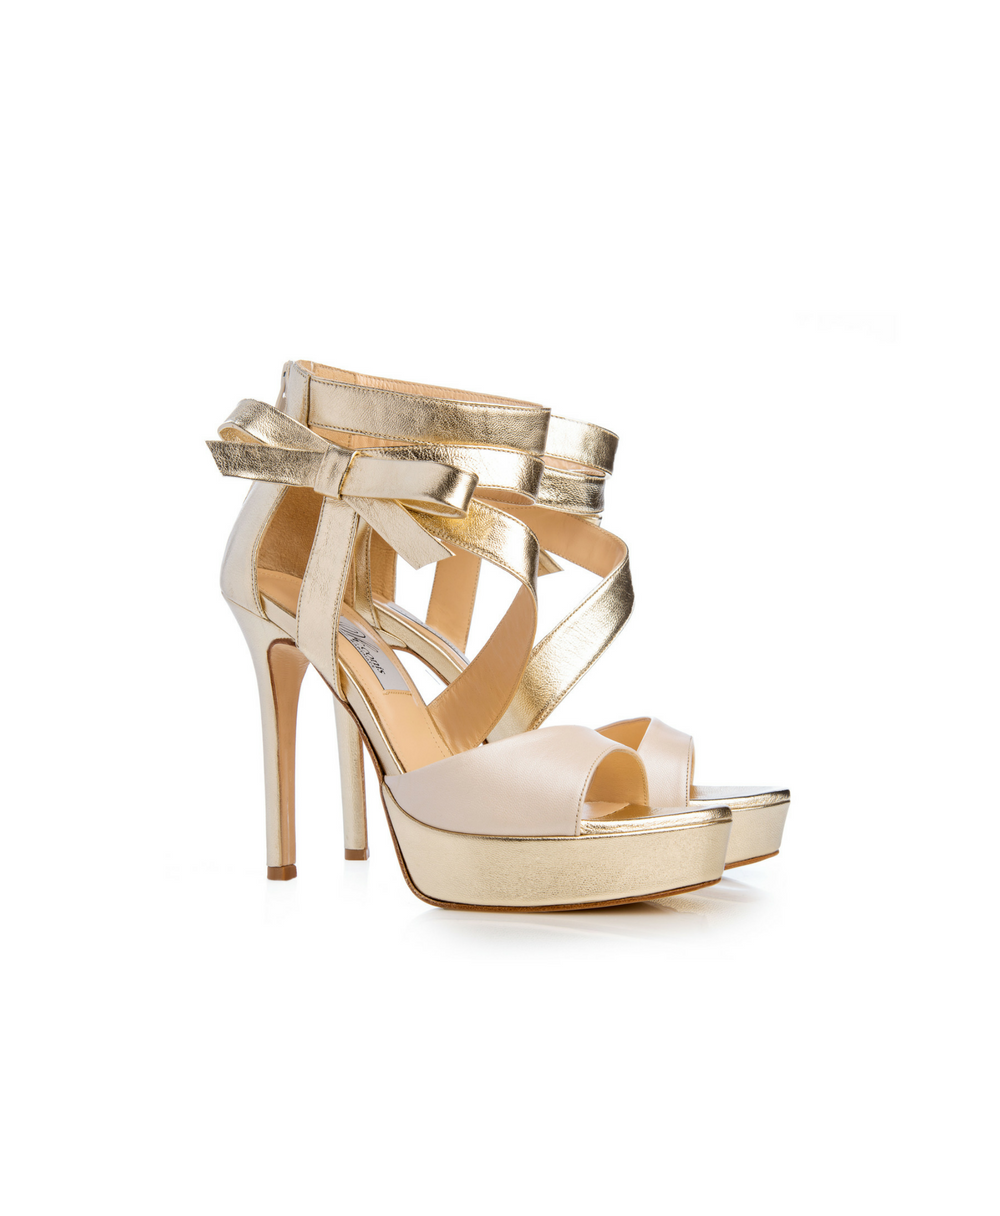 Bridal Ankle Zip High Heel Sandals With Gold And Ivory Leather Mod.2566